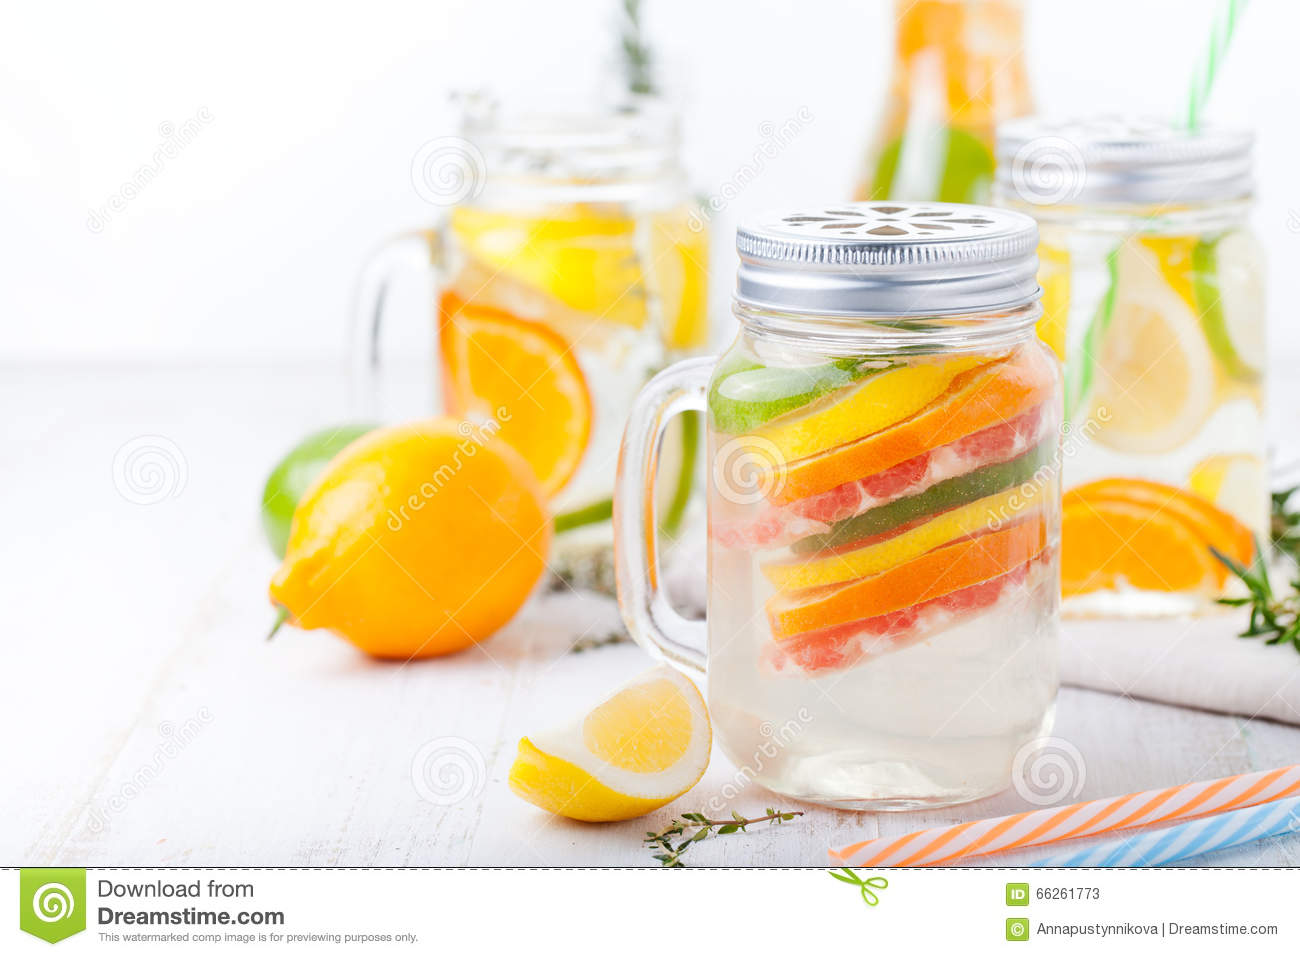 Detox fruit infused flavored water. Refreshing summer homemade lemonade cocktail Cleanse body and burn fat